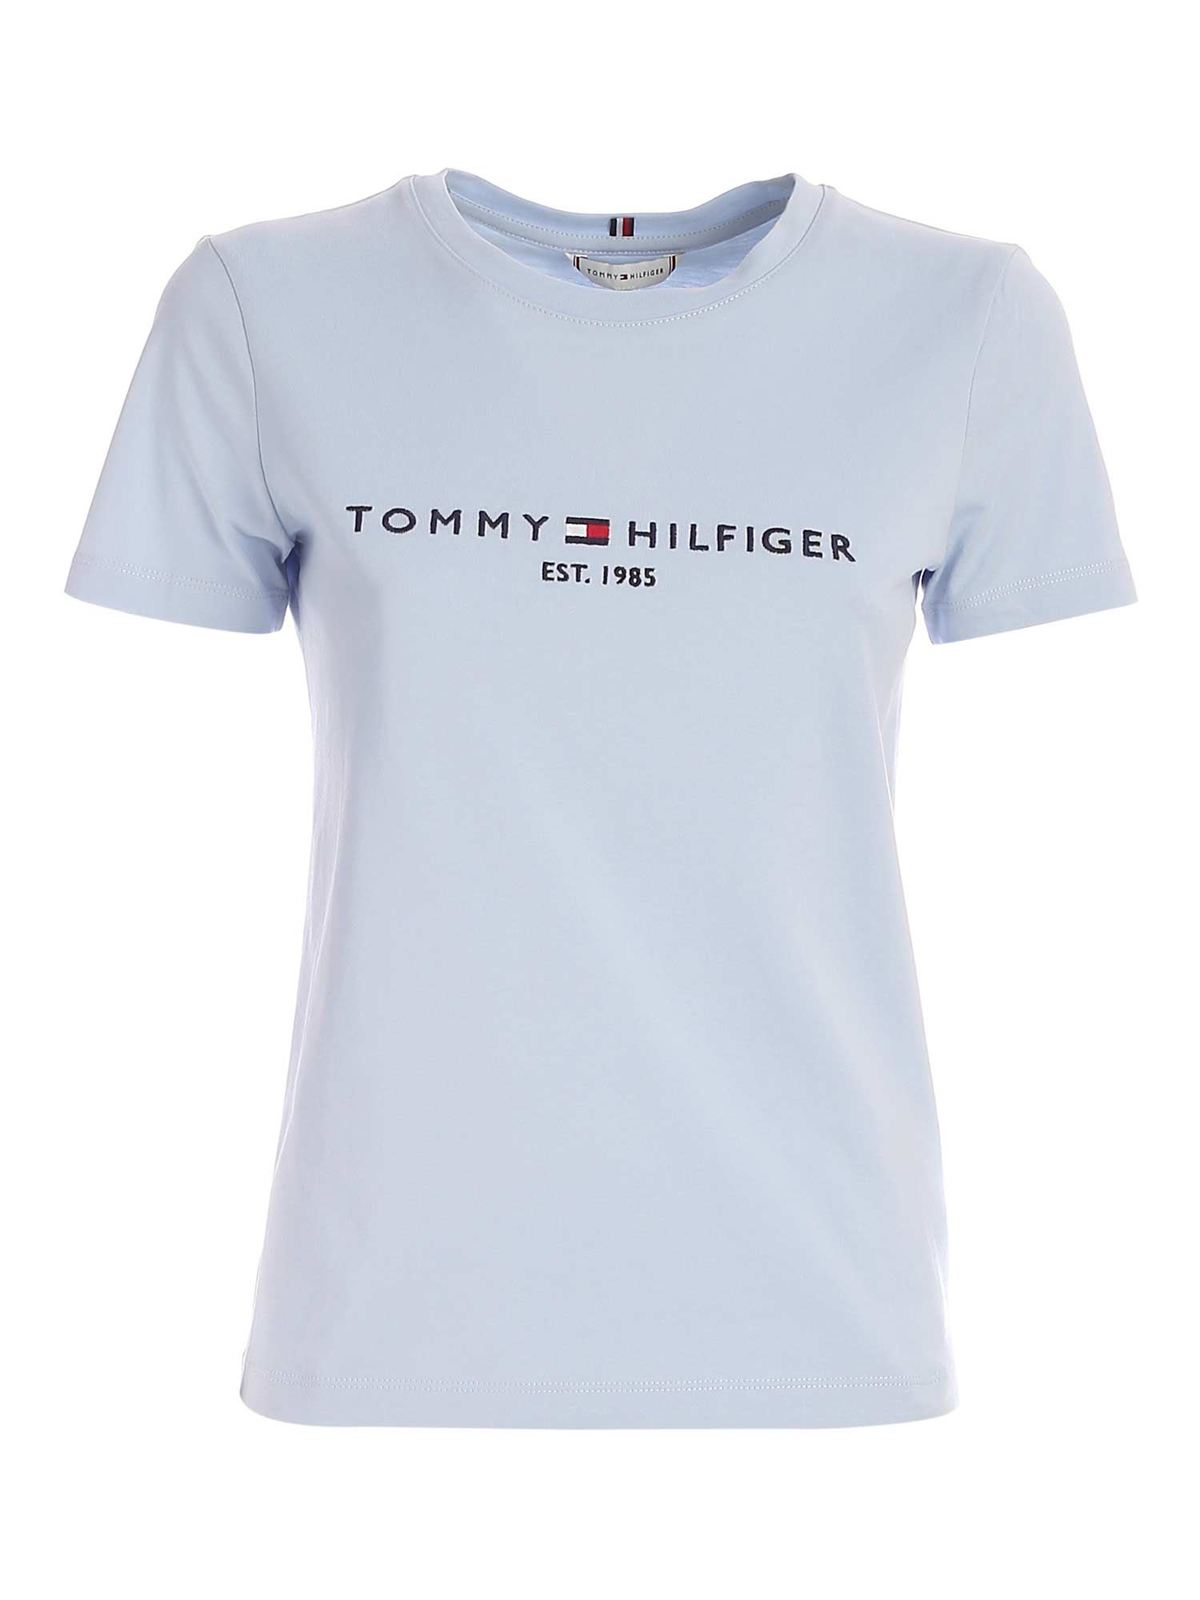 Tommy Hilfiger CONTRASTING EMBROIDERY T-SHIRT IN LIGHT BLUE